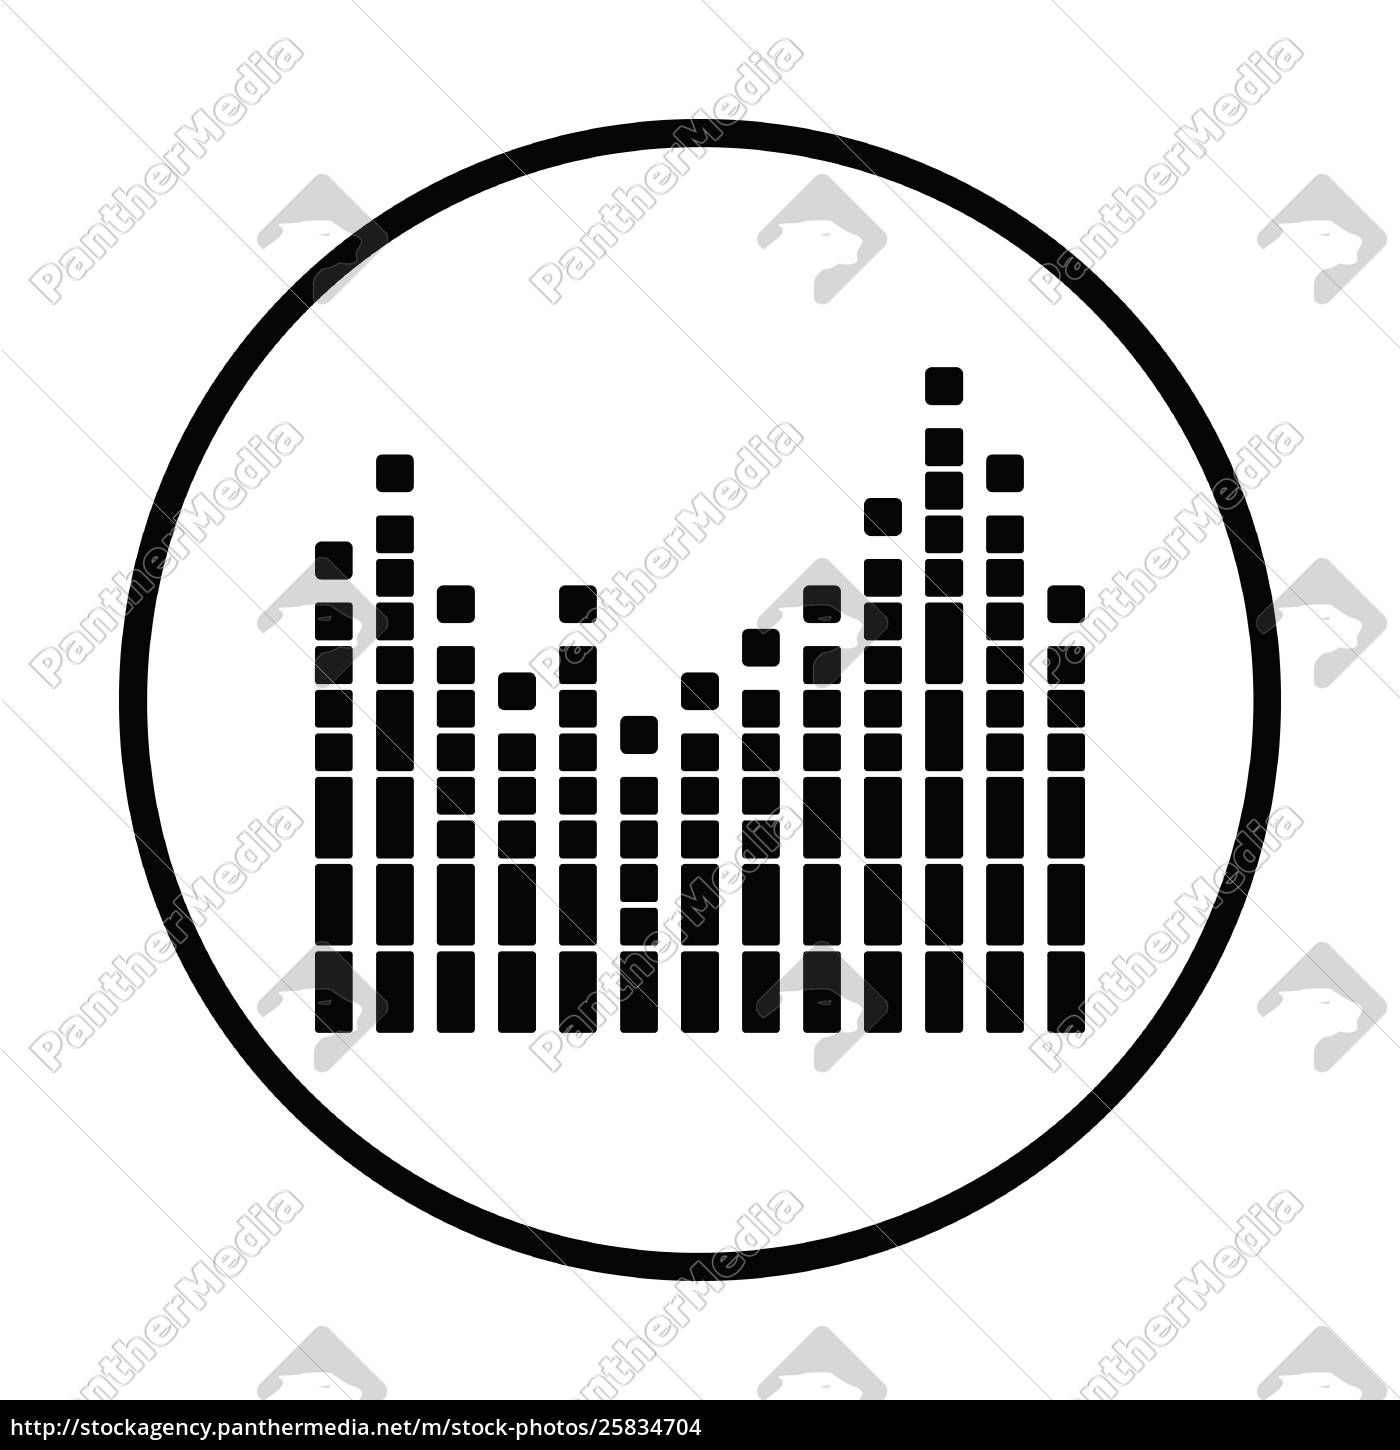 Royalty free vector 25834704 - Graphic equalizer icon